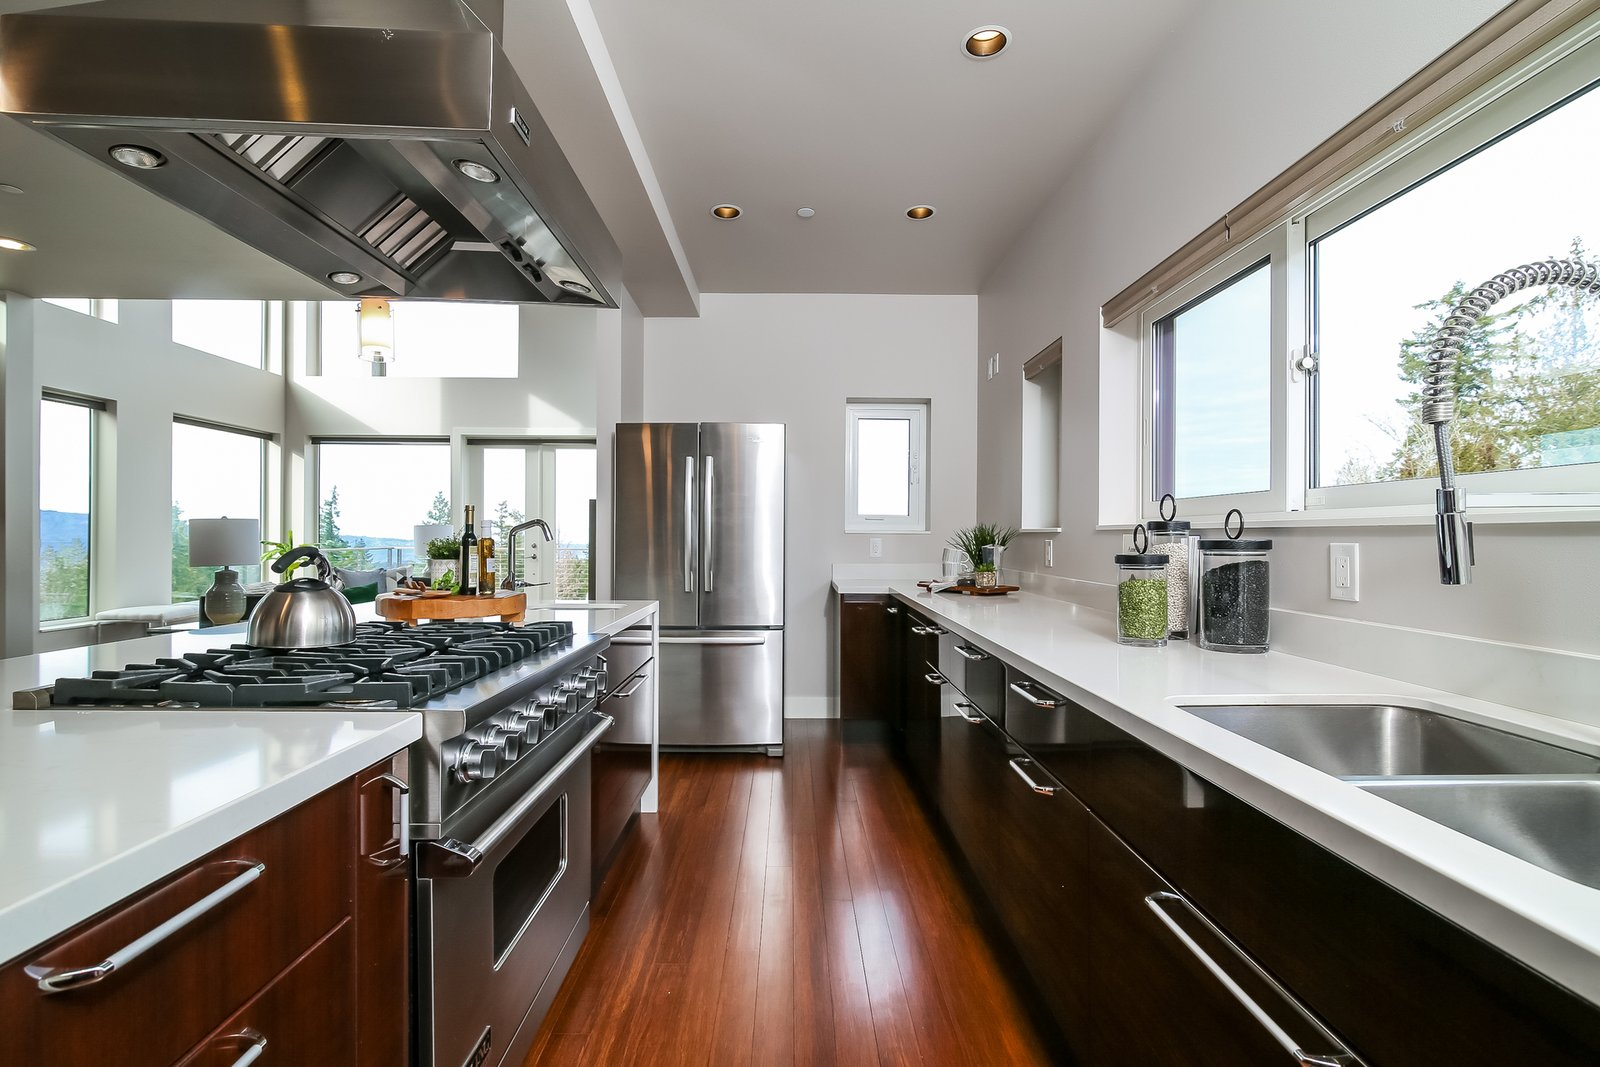 Kitchen, Range Hood, Wood Cabinet, Cooktops, Vessel Sink, Range, Marble Counter, Refrigerator, and Ceiling Lighting  Japanese Builder Ichijo Creates Net-Zero Energy Home by PlanOmatic